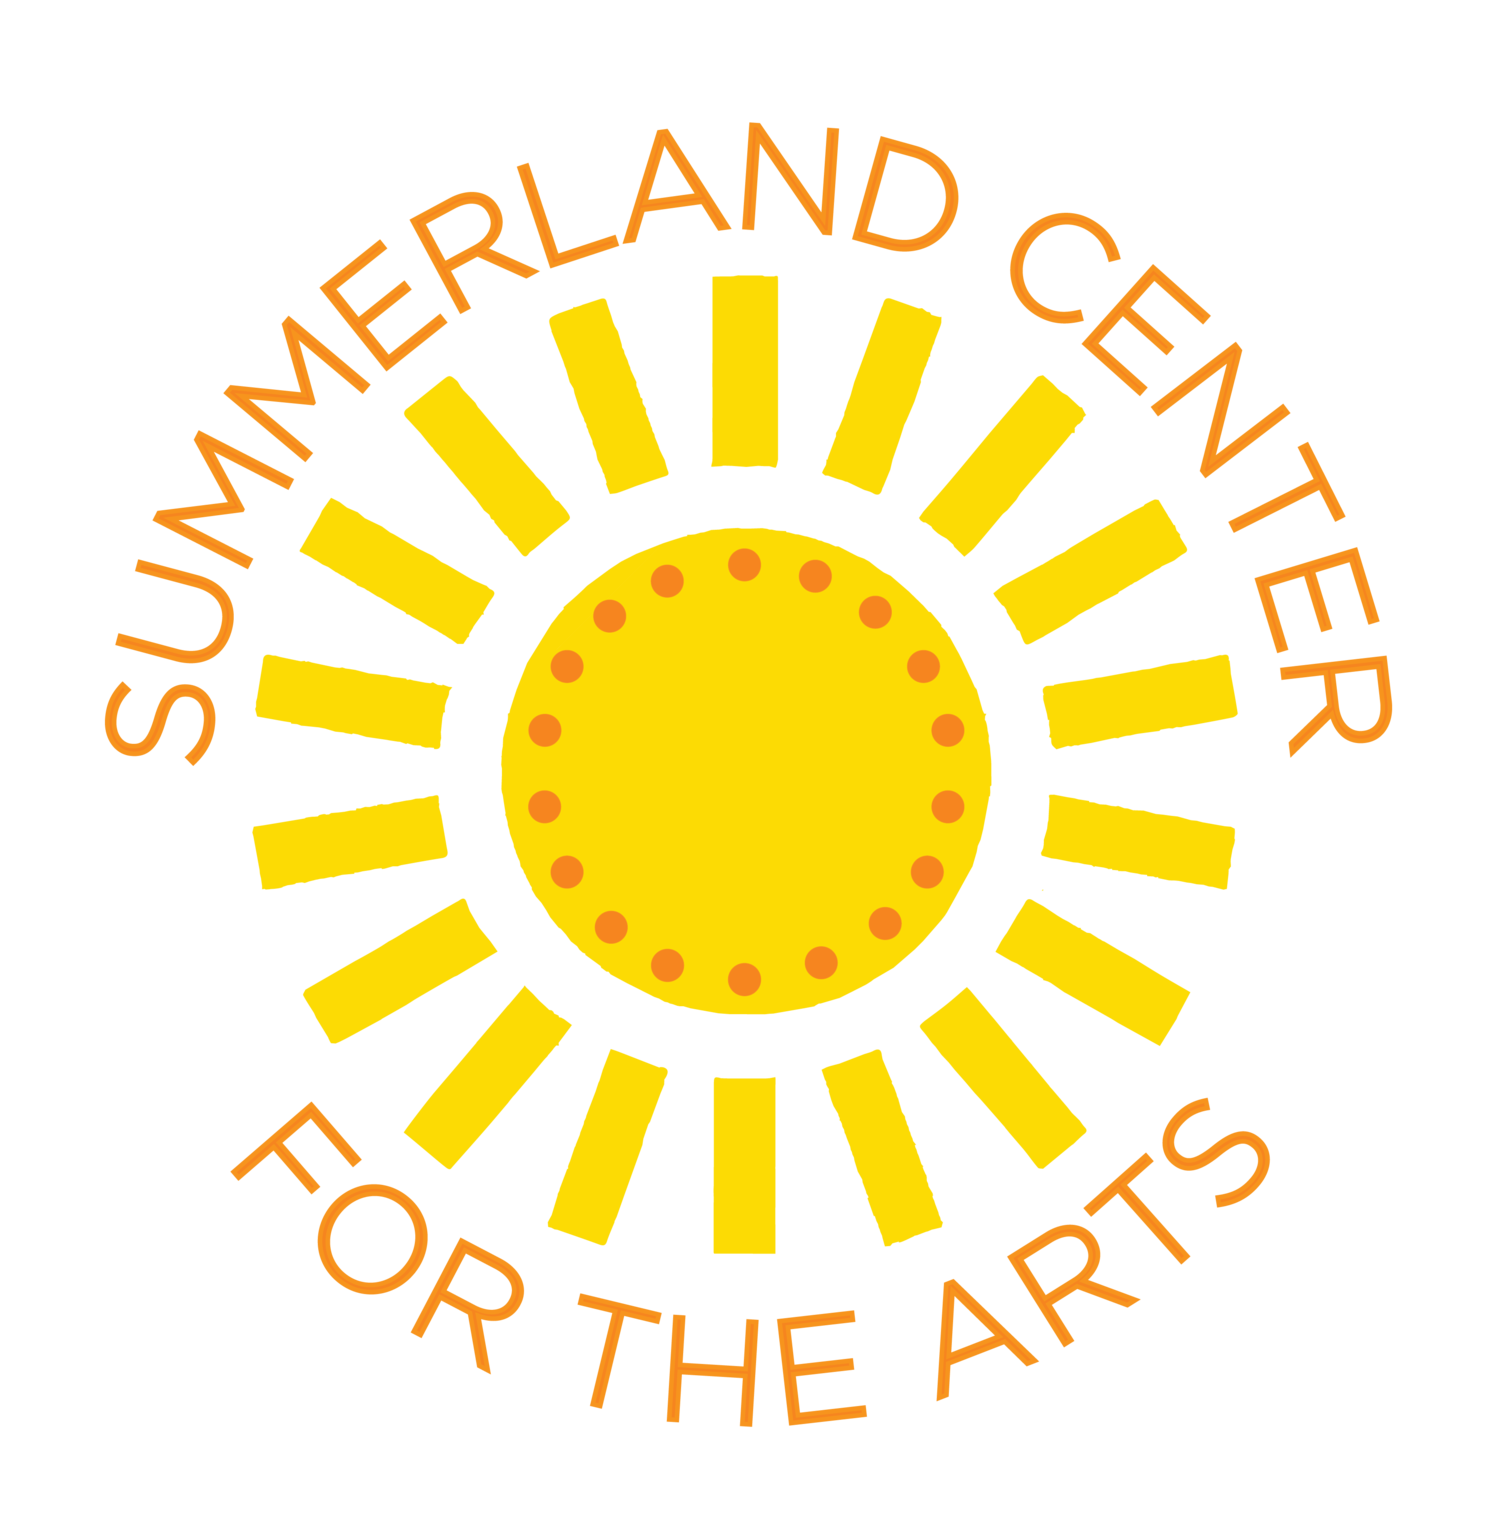 Summerland Center for the Arts